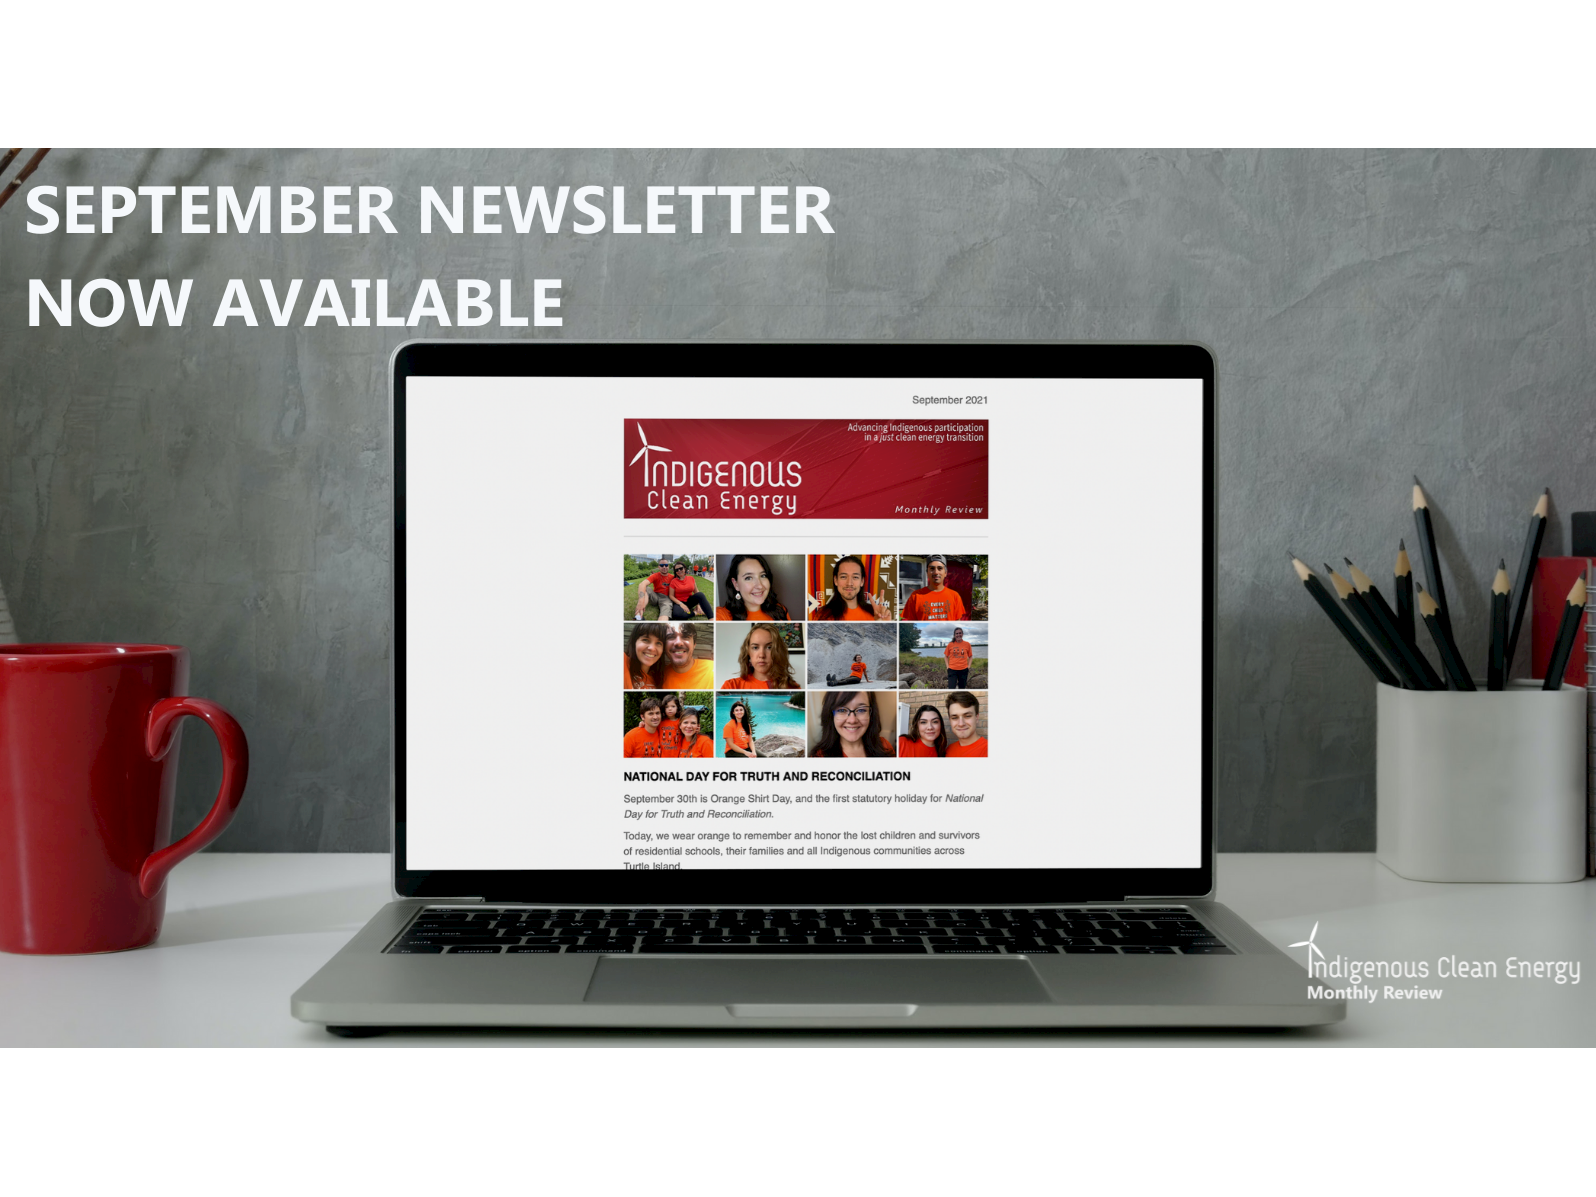 ICE's September newsletter is now available!